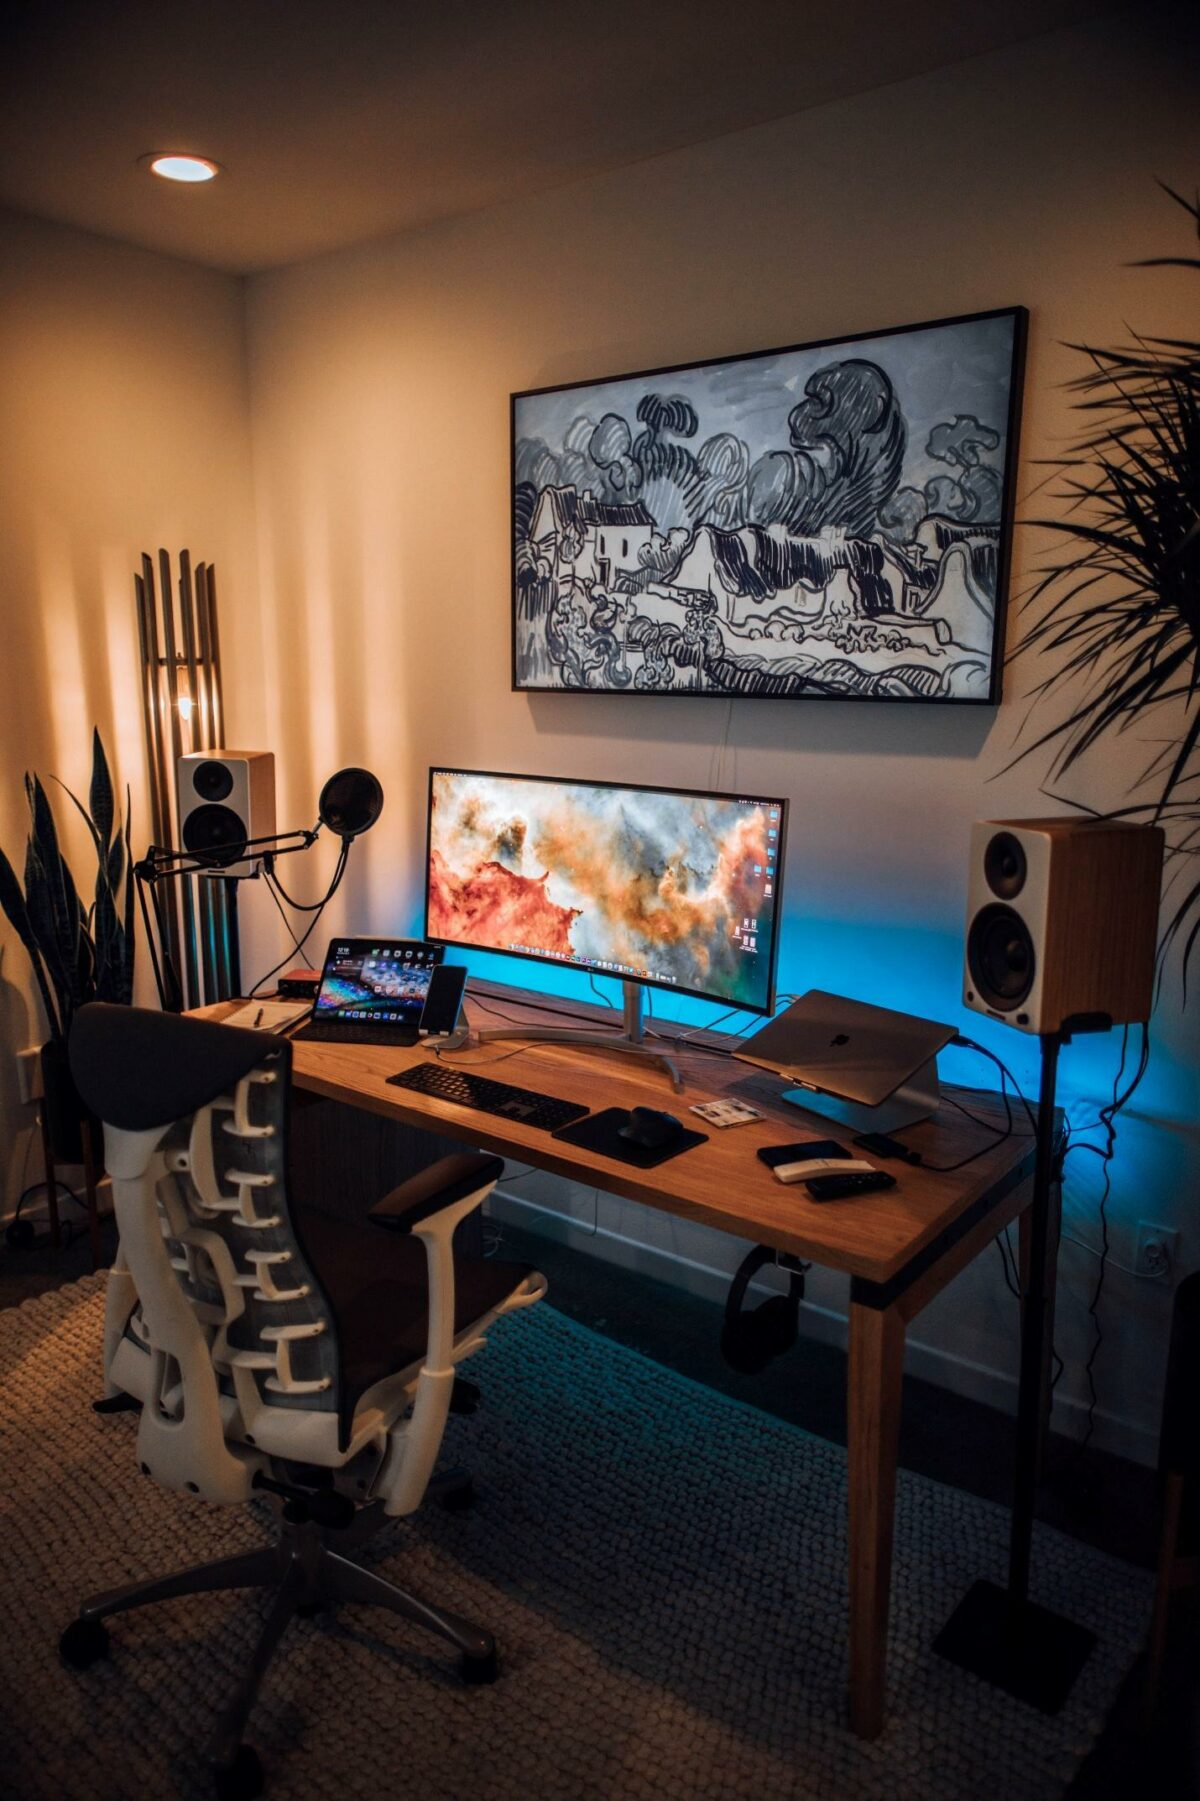 5 Cable Management Tips To Organize Your Gadgets